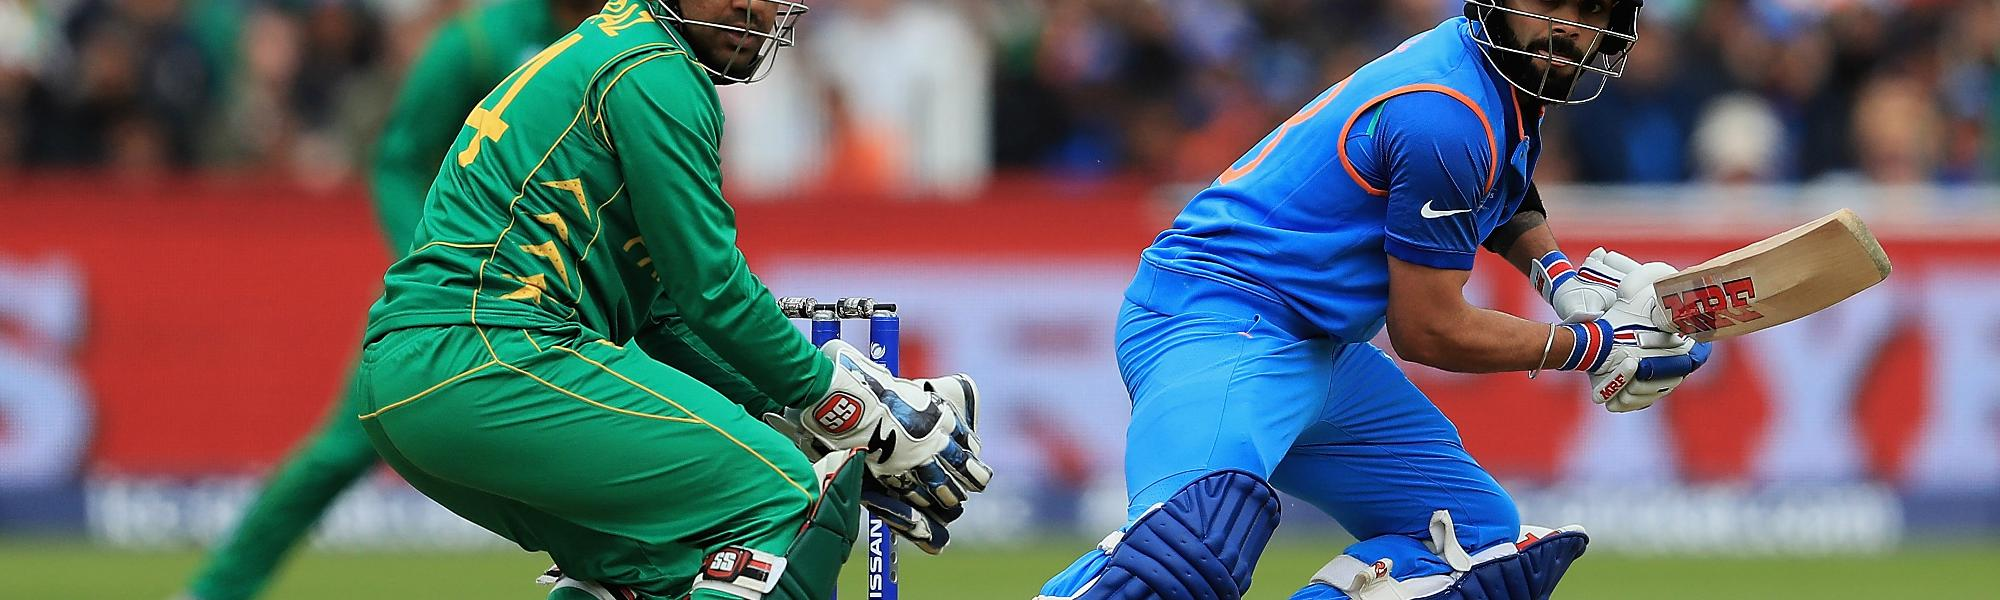 India and Pakistan will face off on 16 June at Old Trafford